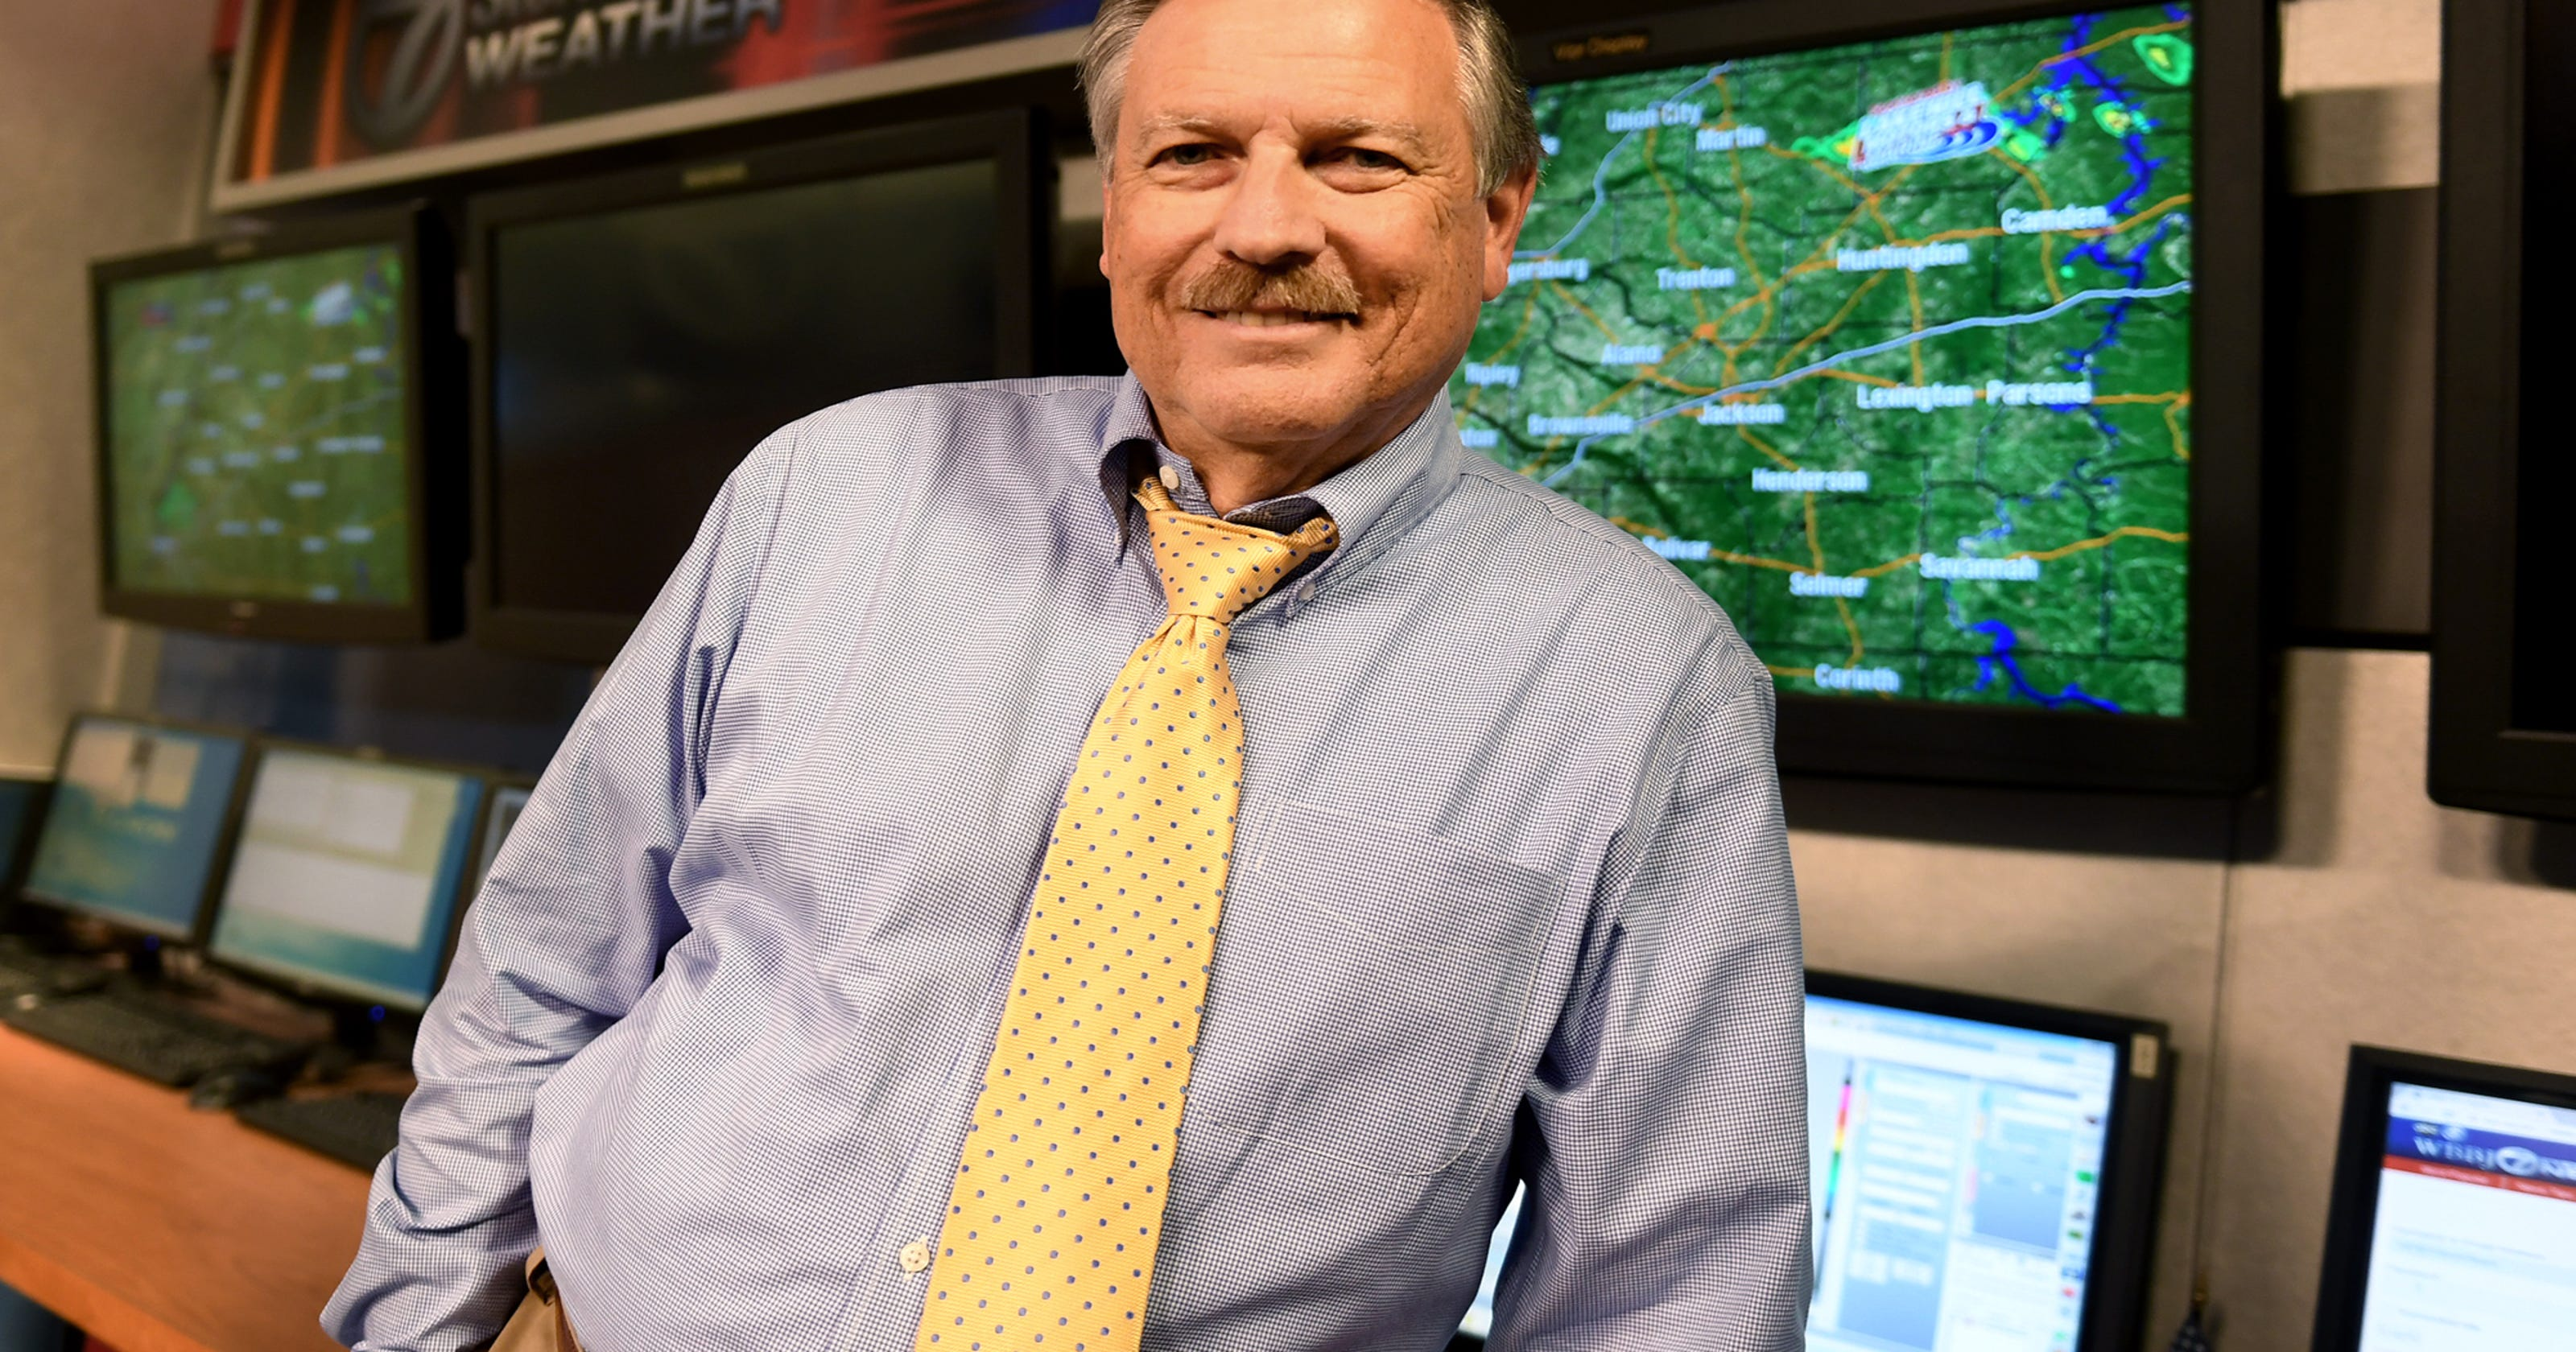 WBBJ's Gary Pickens retiring after 29 years